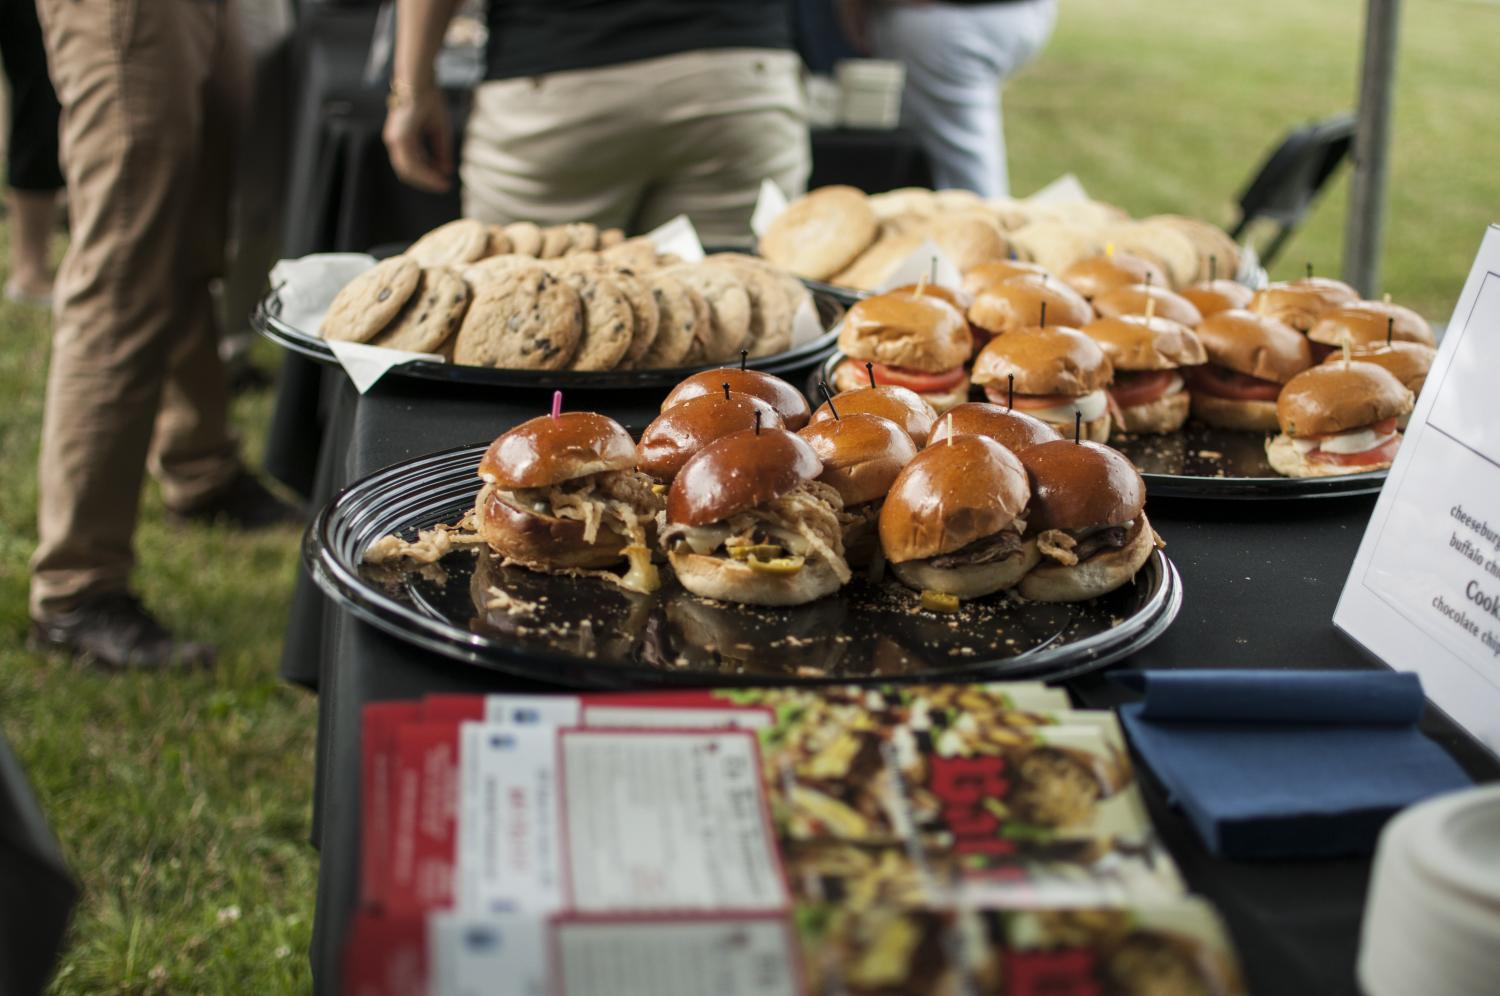 Sandwiches and cookies sit on a table outside the Evanston History Center. Evanston residents sampled food from numerous local restaurants at the Taste of Evanston event on Sunday.